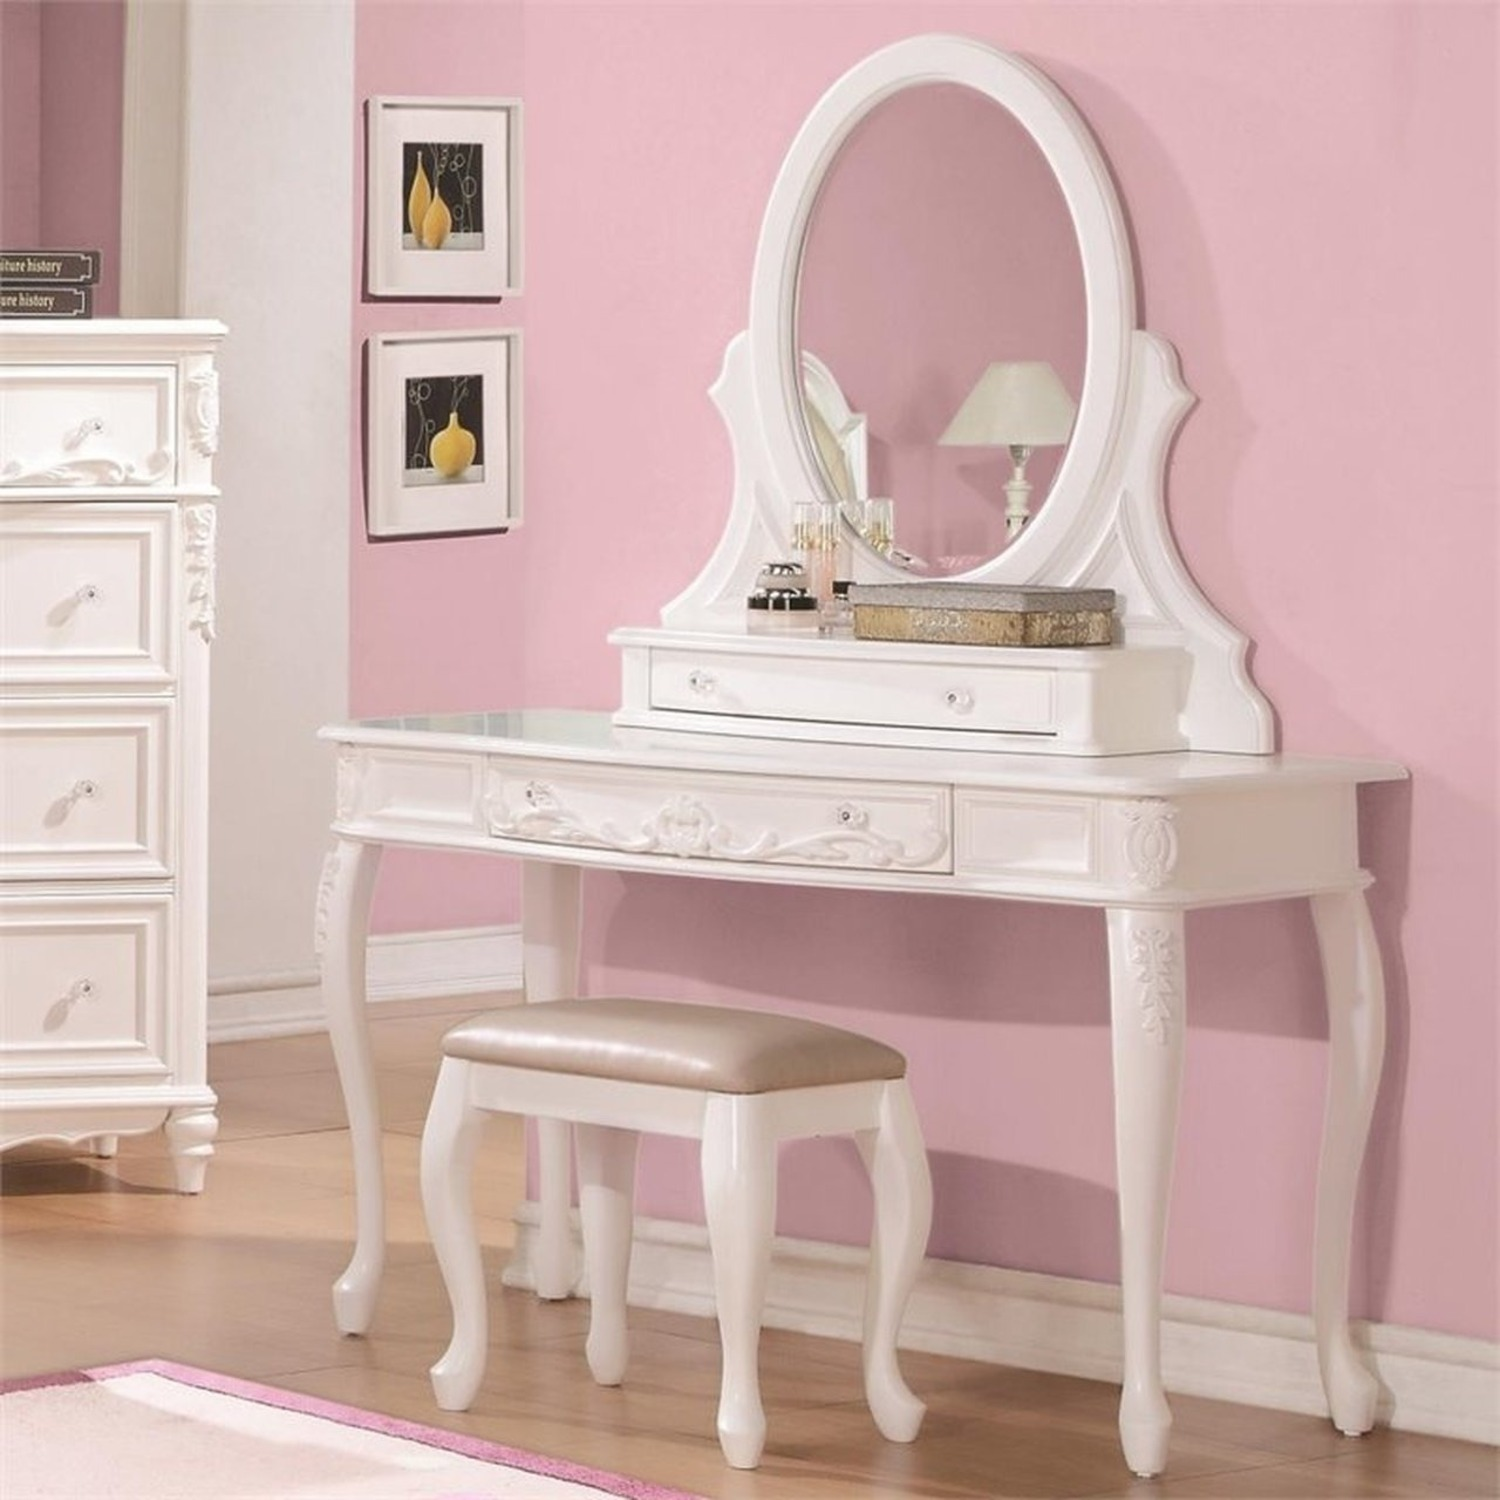 Vanity Desk In White Finish W/ Elegant Details - image-3